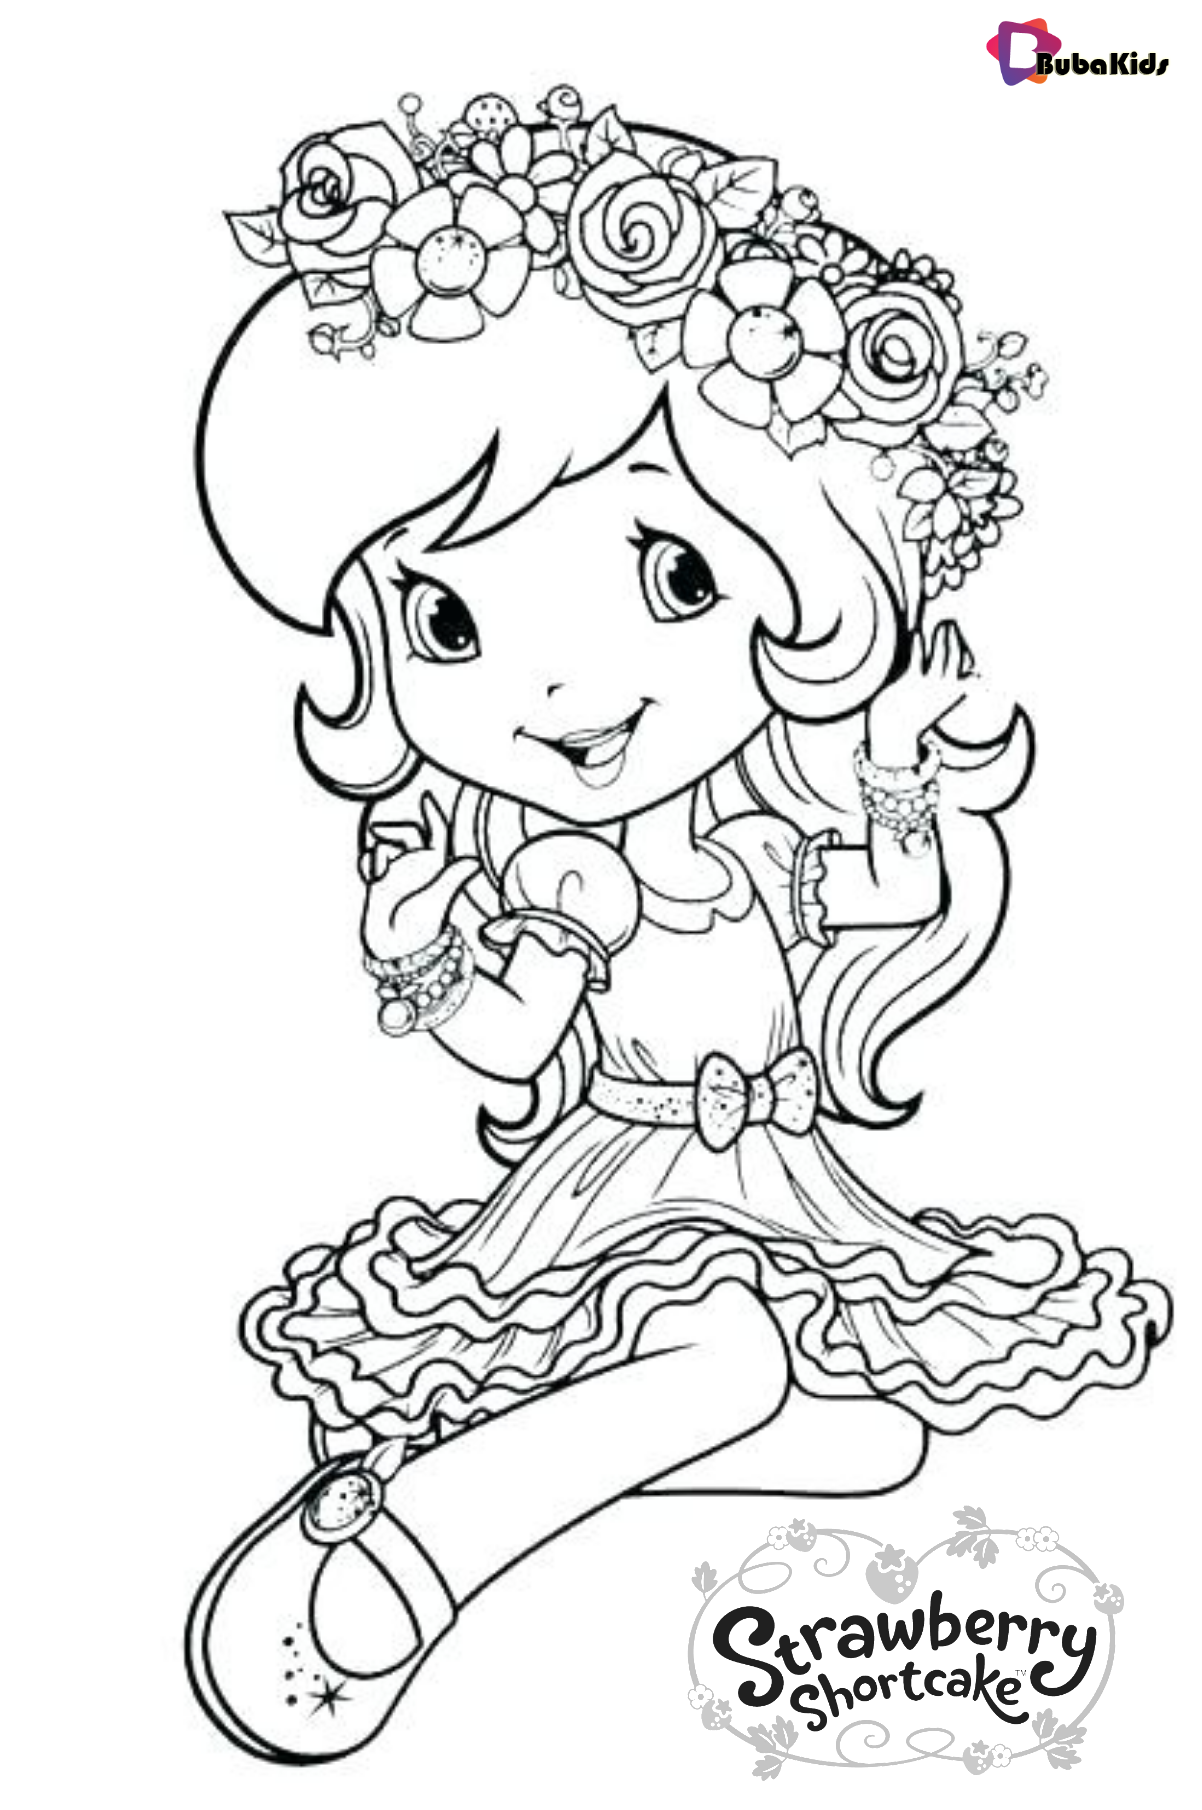 Free Printable Coloring Page Strawberry Shortcake Strawberry Shortcake Strawbe Strawberry Shortcake Coloring Pages Disney Coloring Pages Cute Coloring Pages